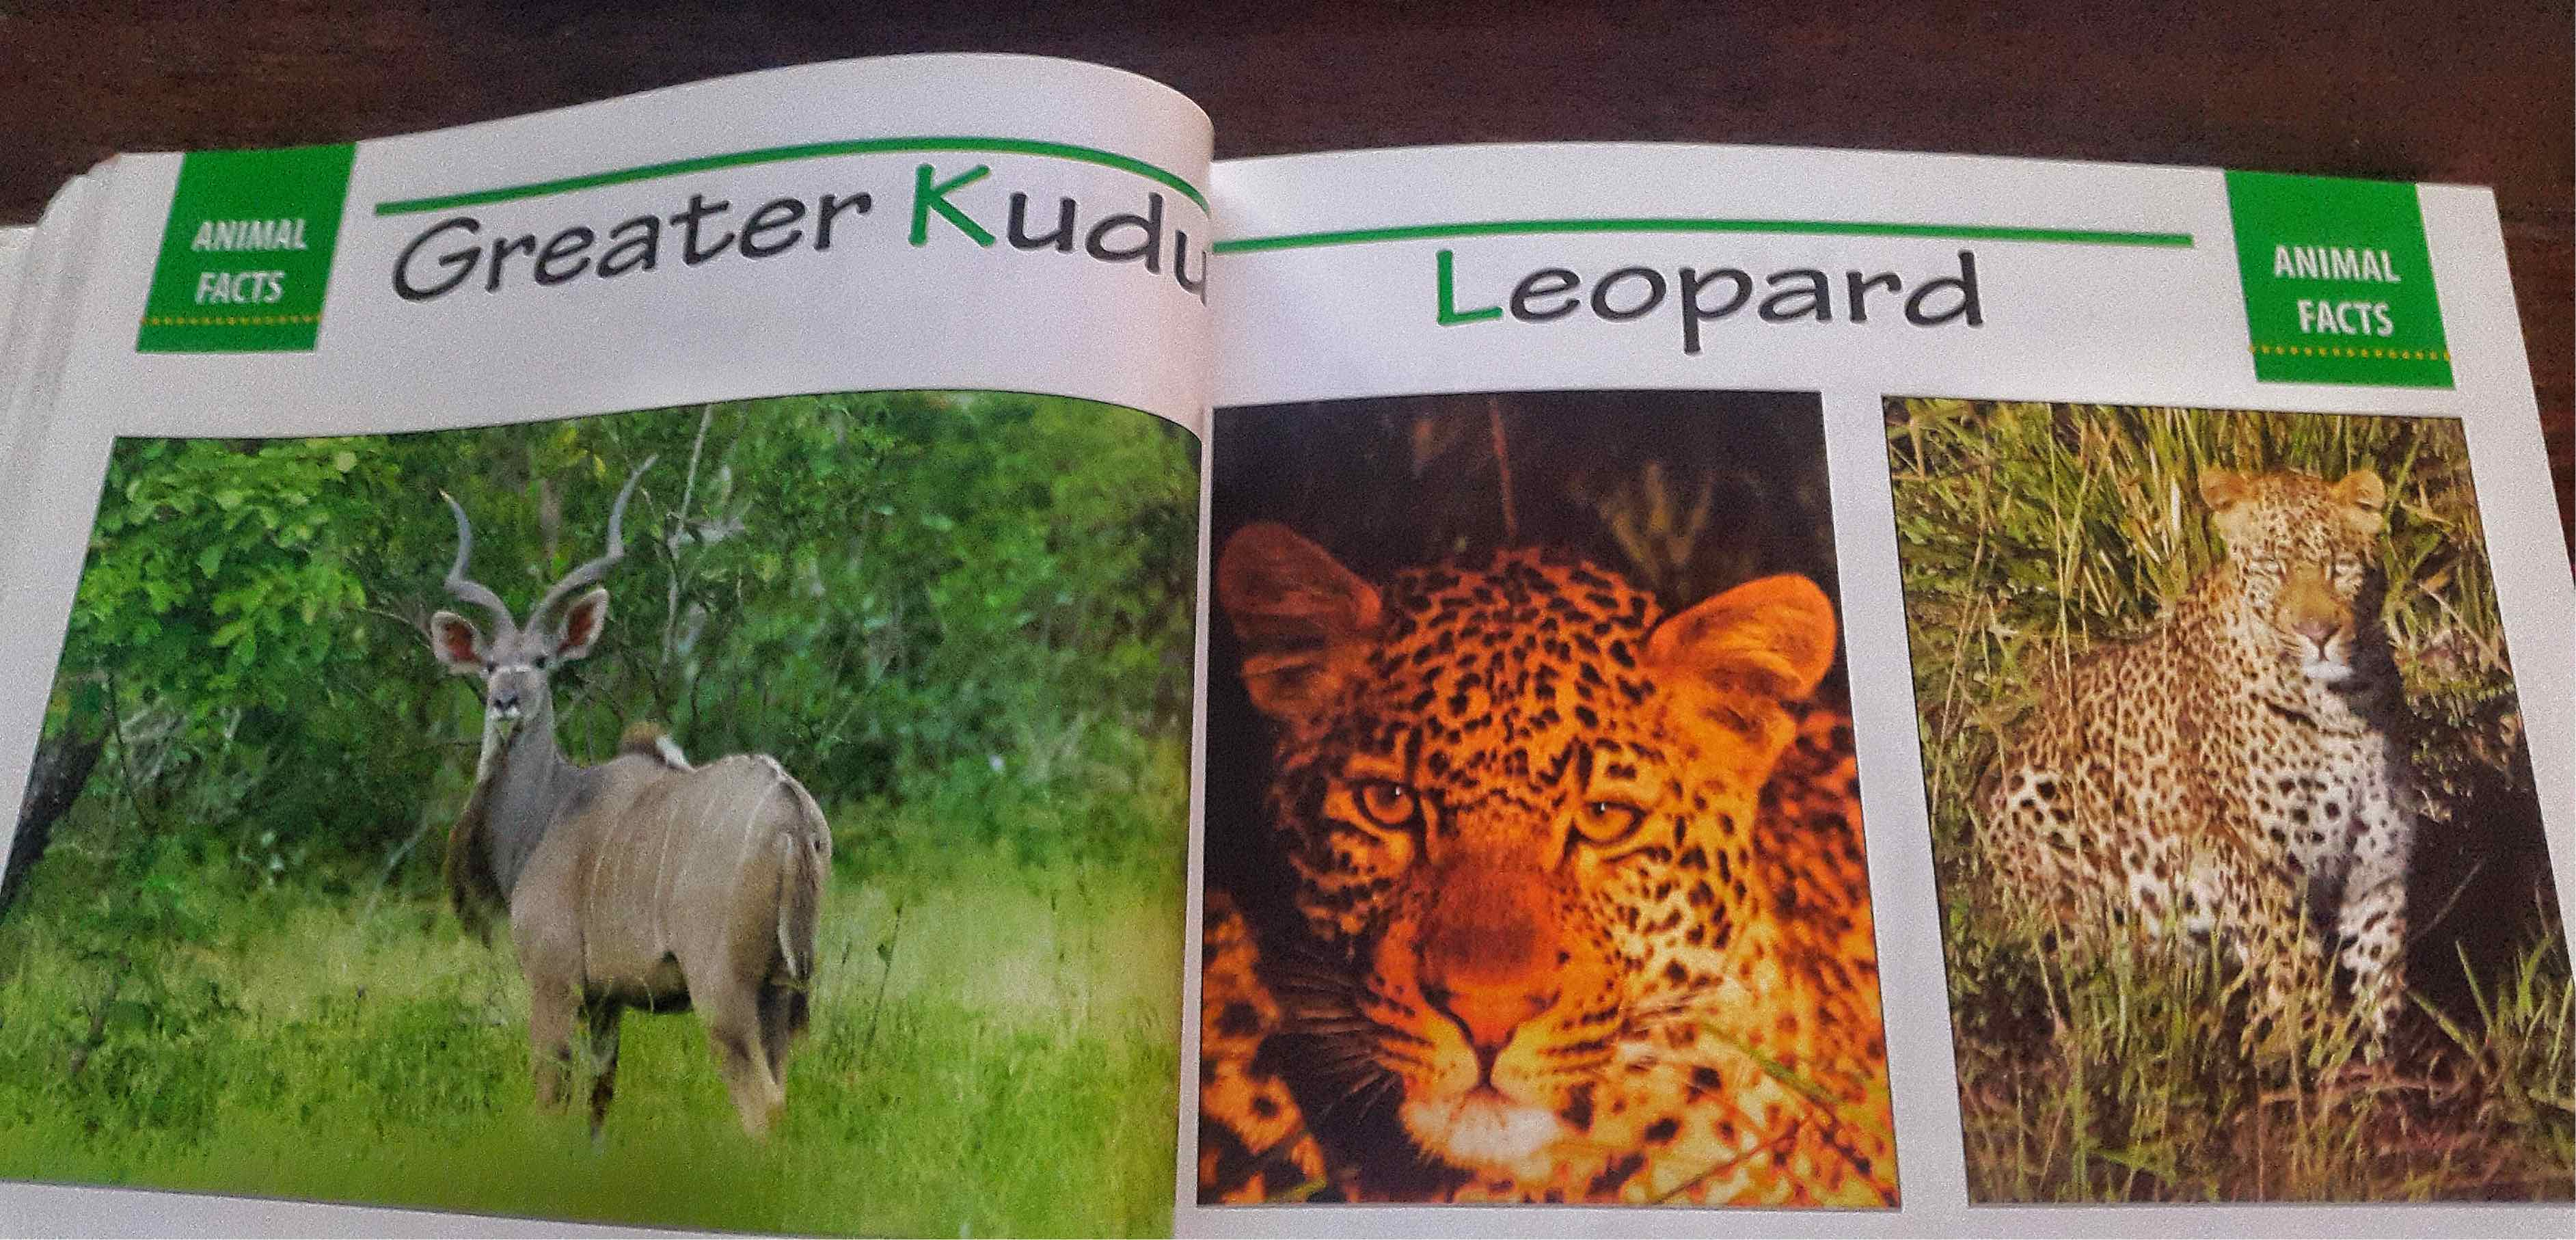 From The Sobo Guide to Malawi's Mammals